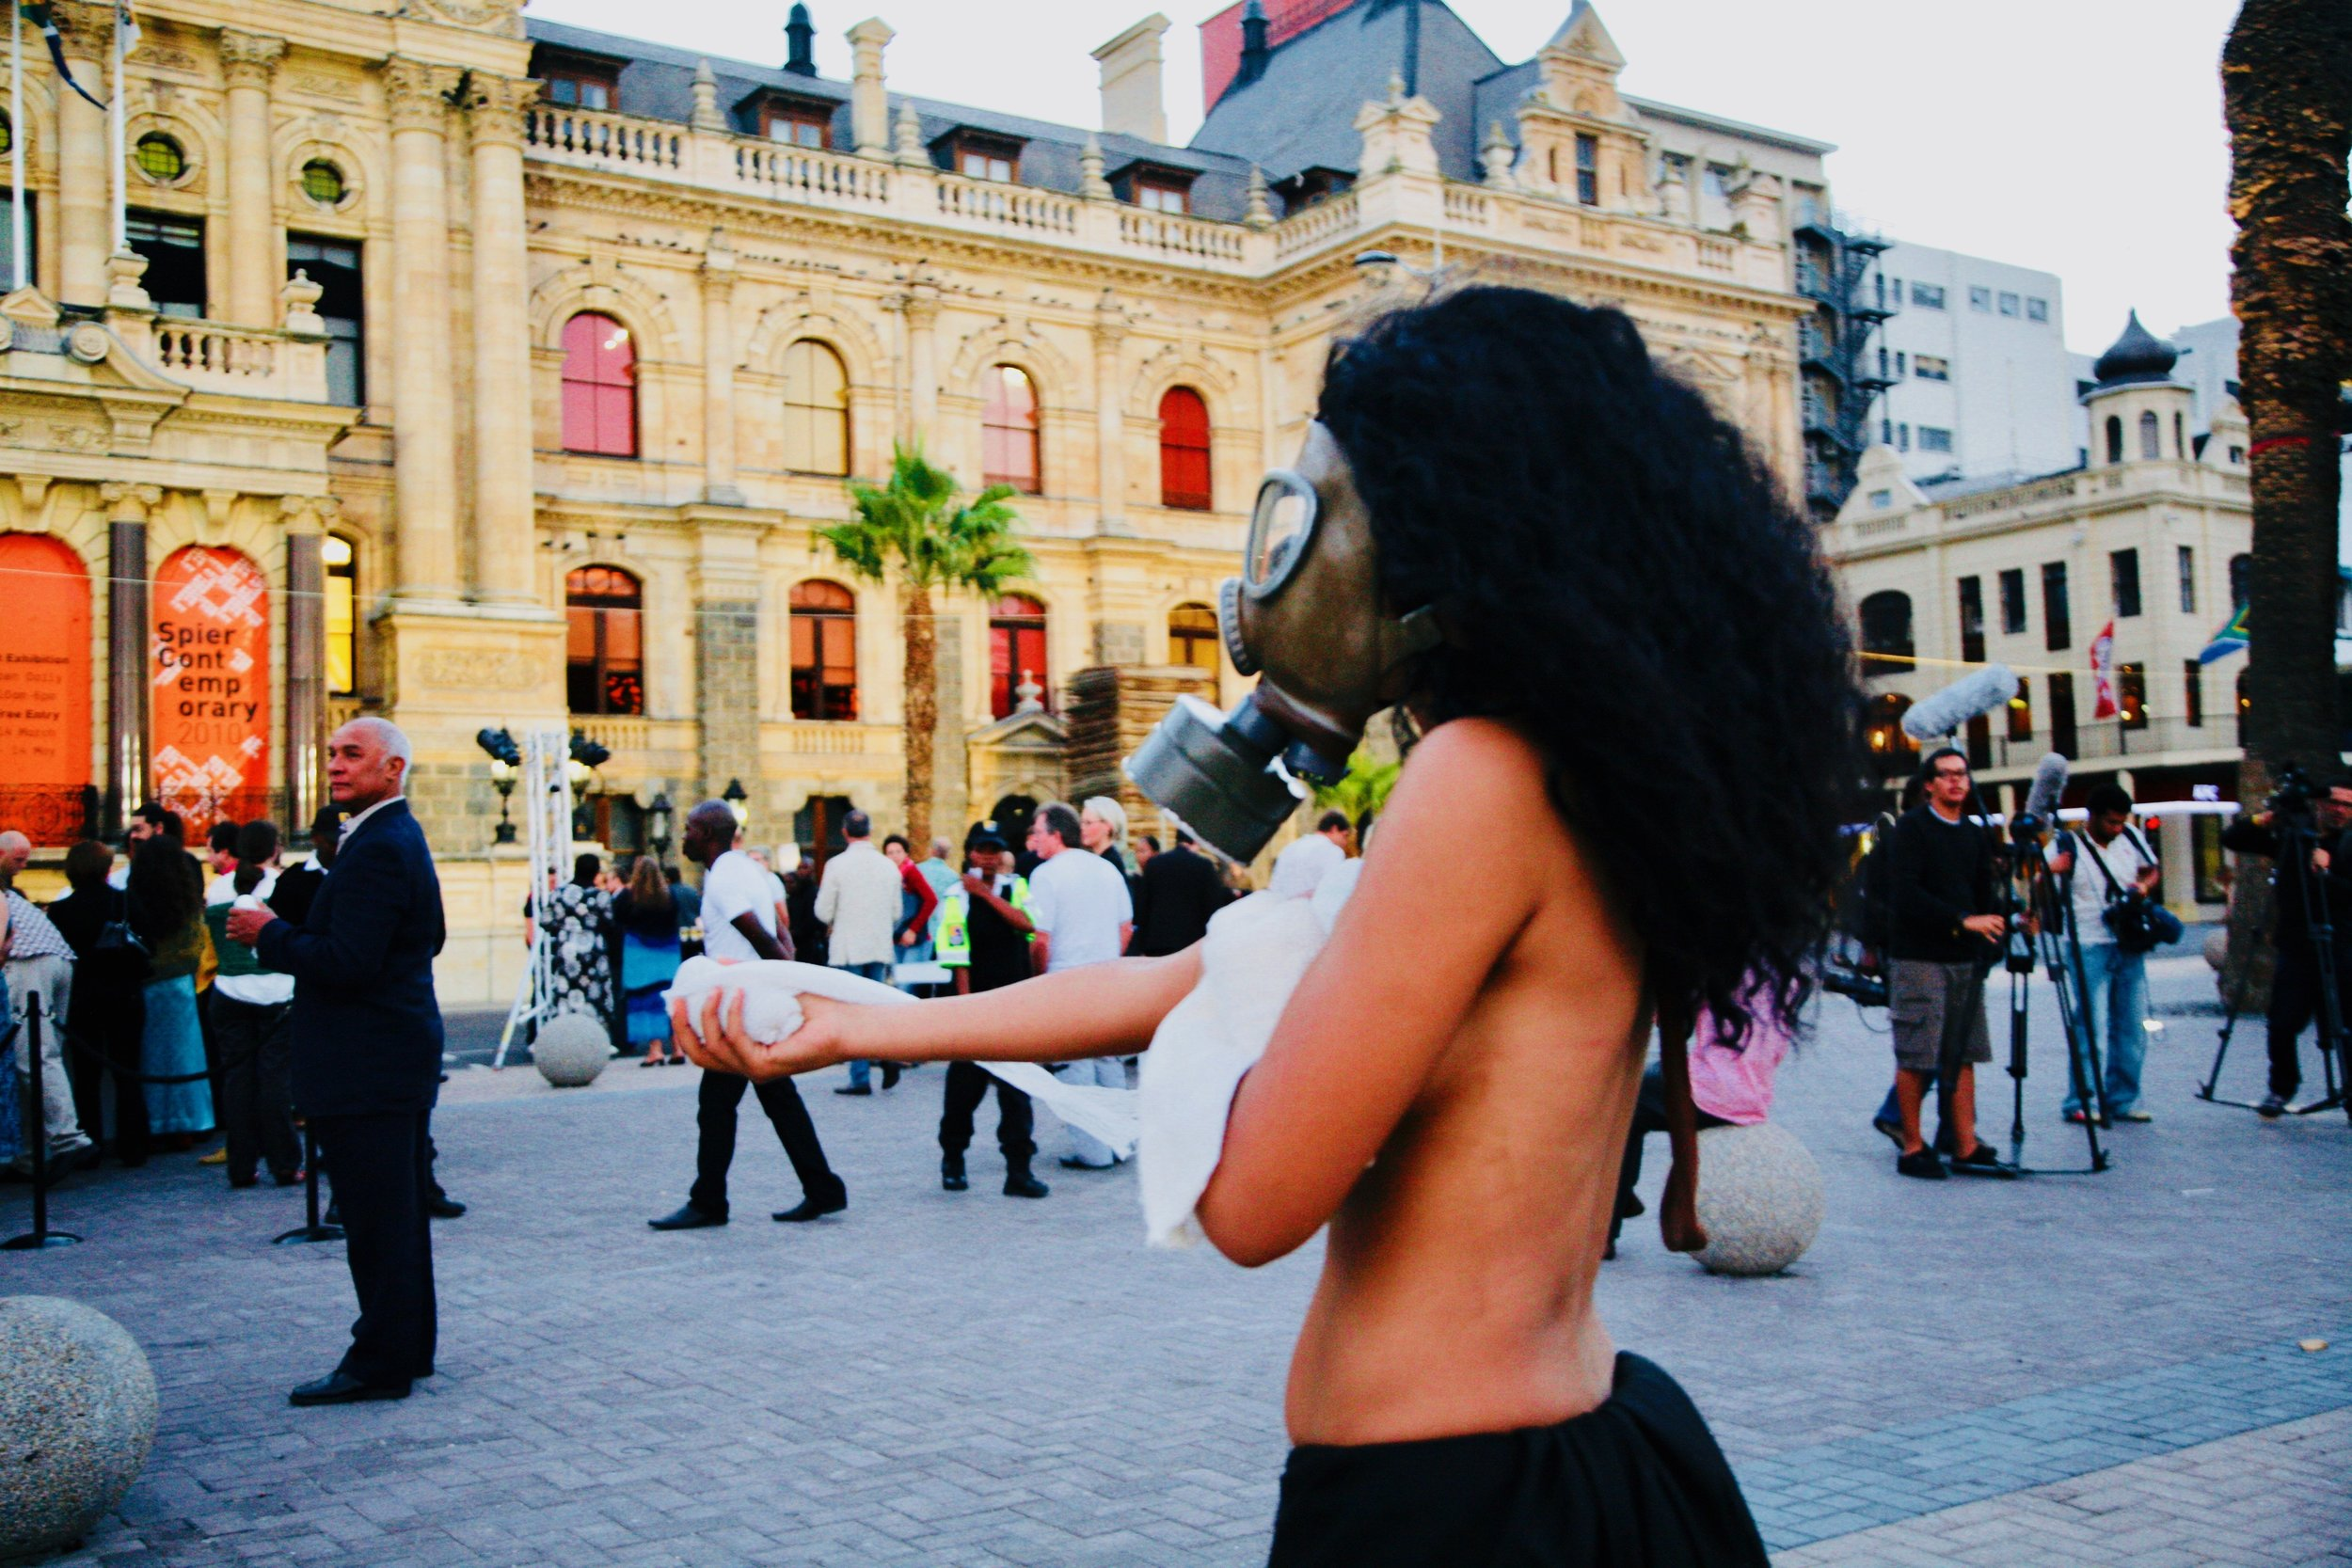 A performance art work at the opening of the Spier Contemporary held at the City Hall in 2010